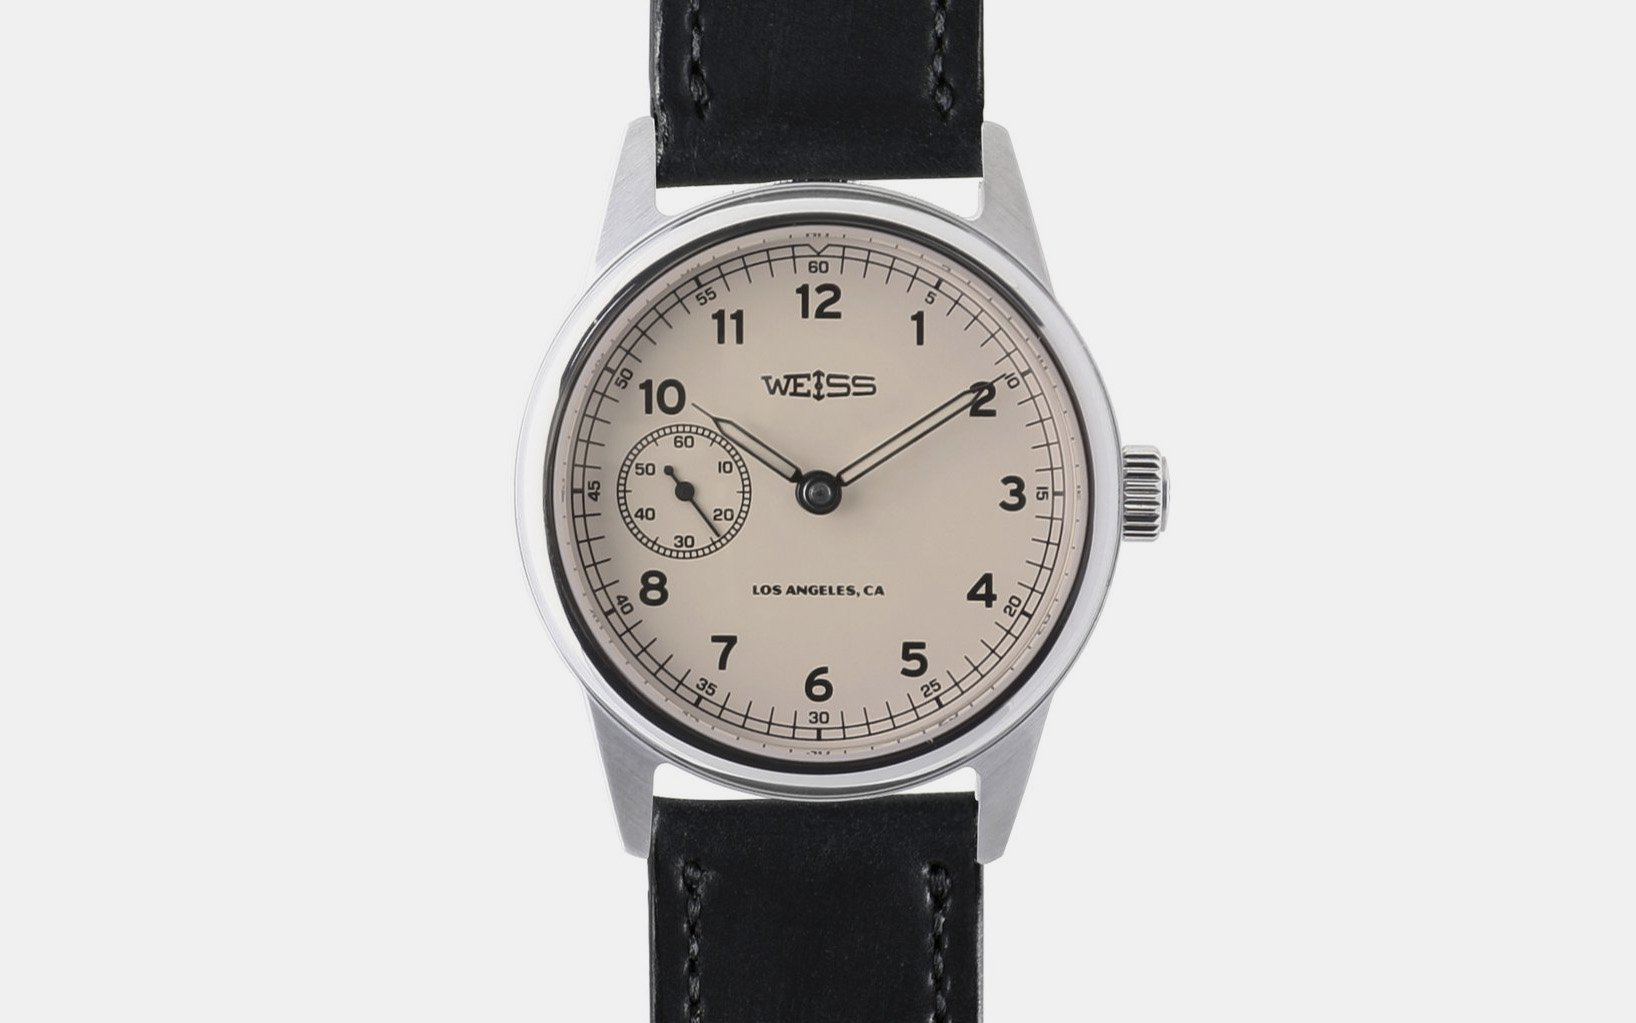 WEISS WATCH COMPANY The American Issue Field Watch